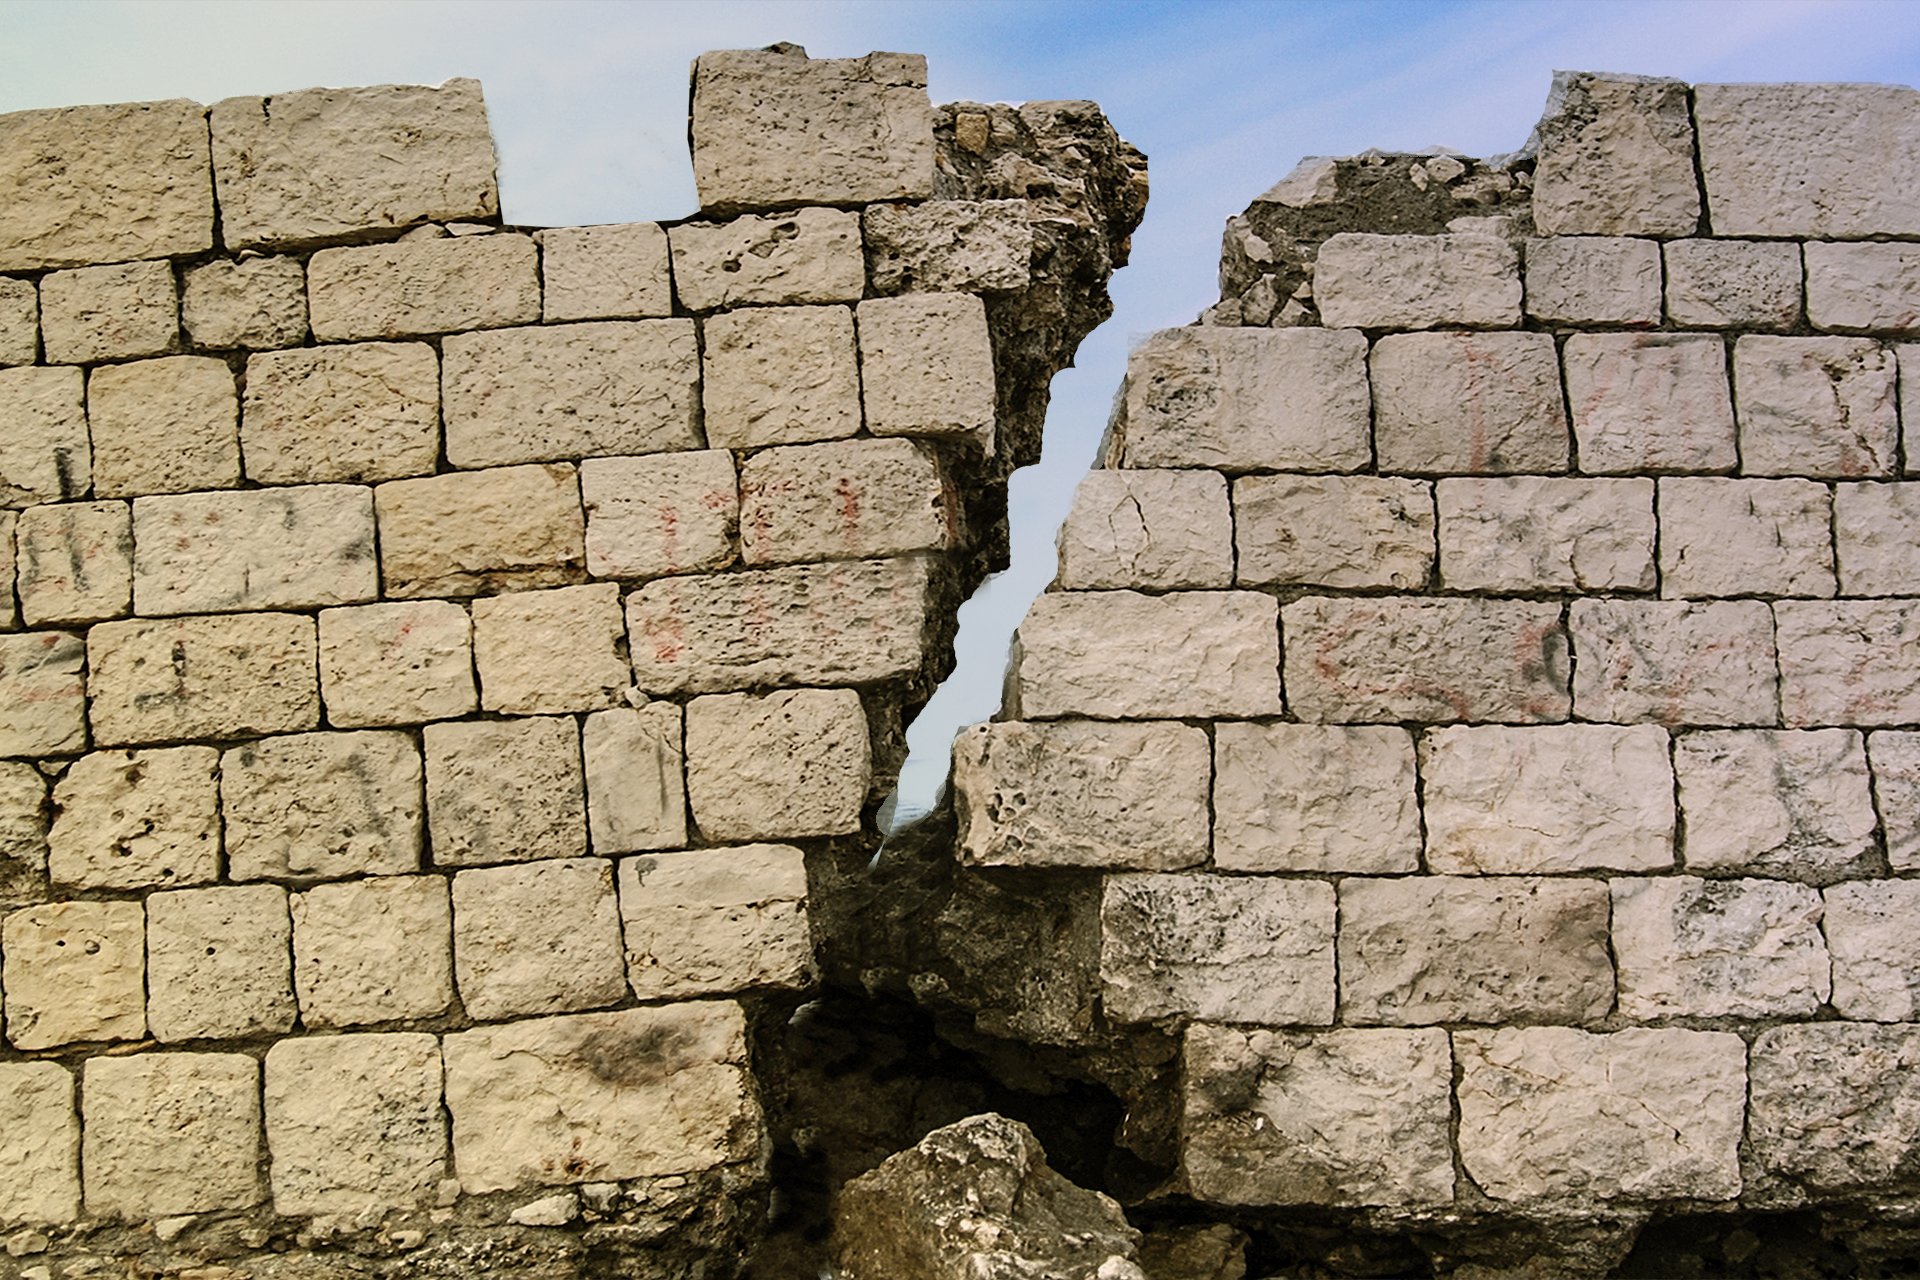 International Women's Day – We Must Knock Down a Thousand Tiny Walls - Bev White, CEO, Harvey Nash Group